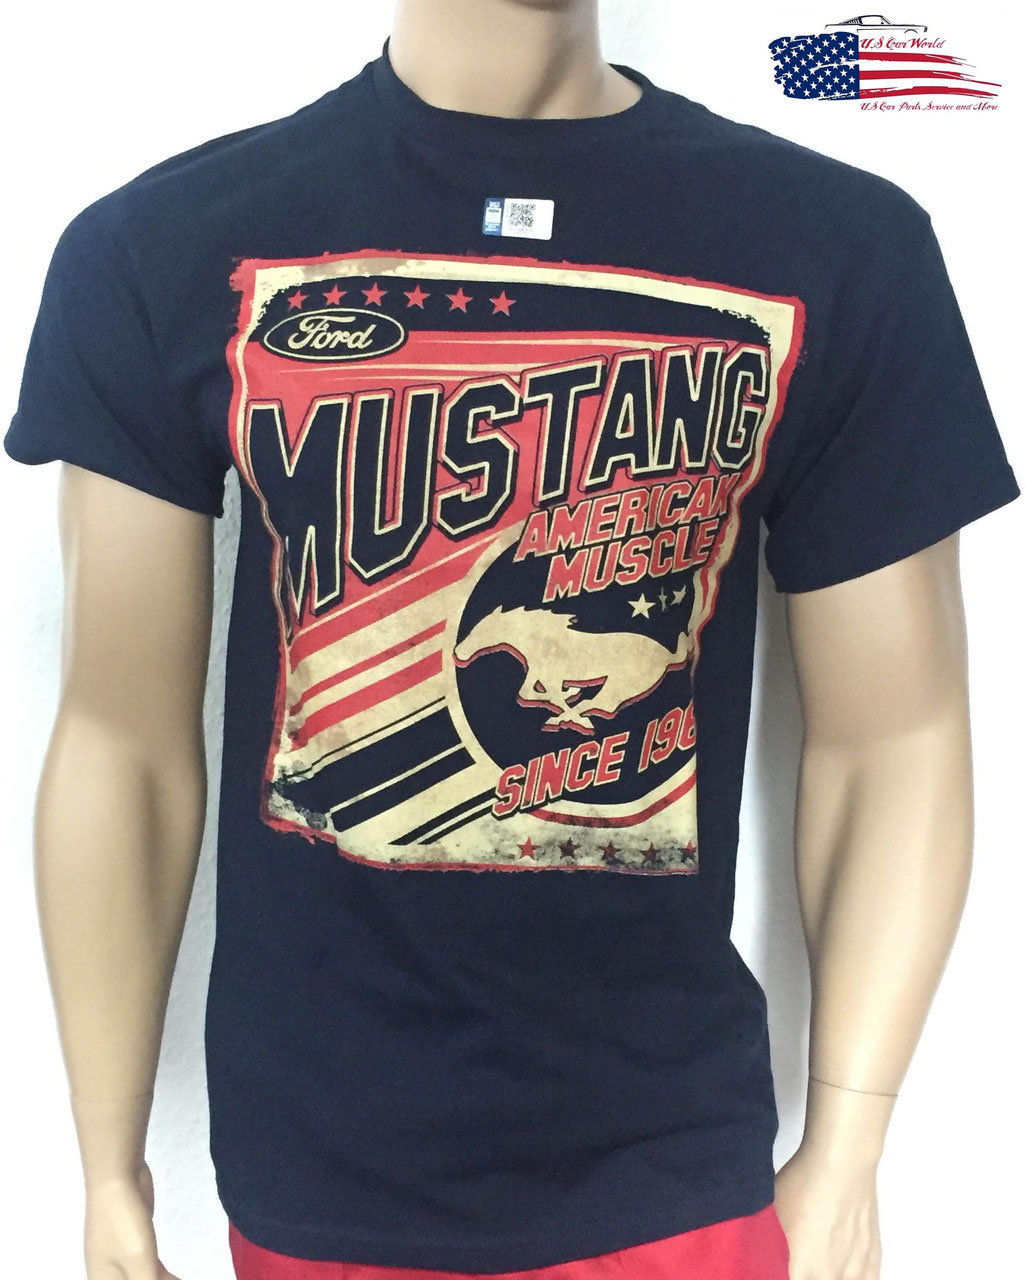 Mustang t shirts us car world us car parts lifestyle for Vintage mustang t shirt